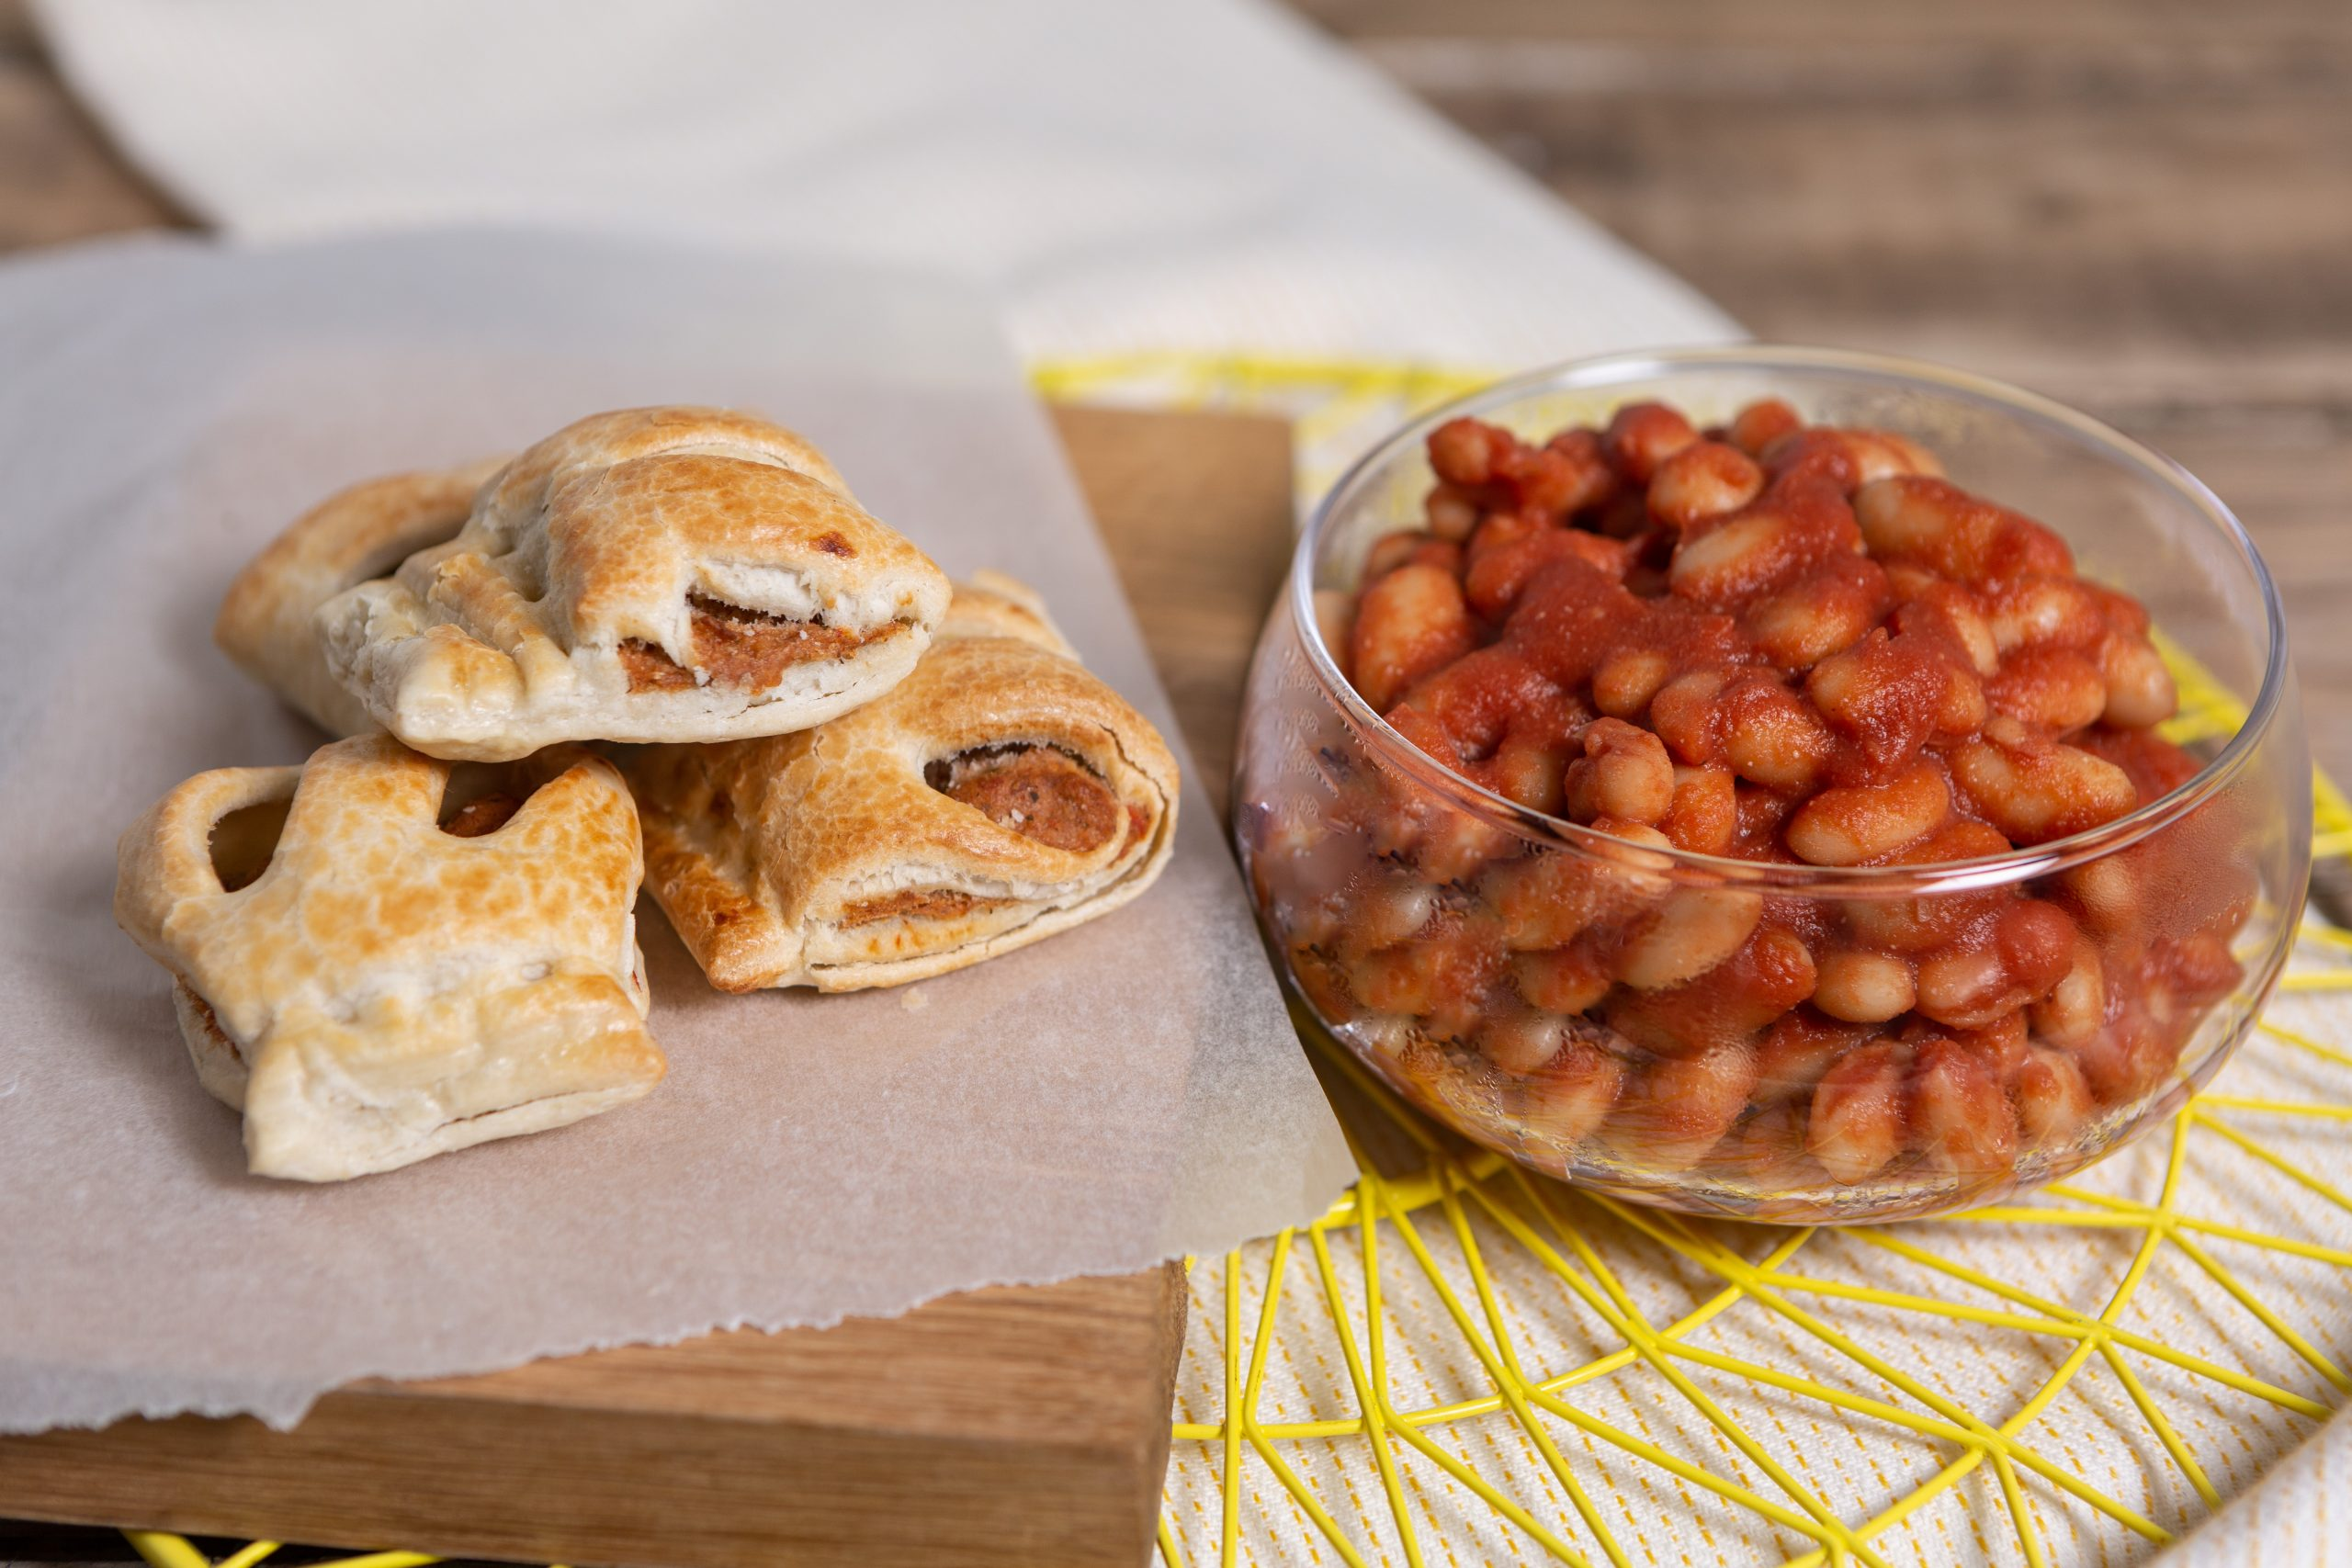 Wall's Pastry_Smoky baked beans with vegan sausage rolls_2